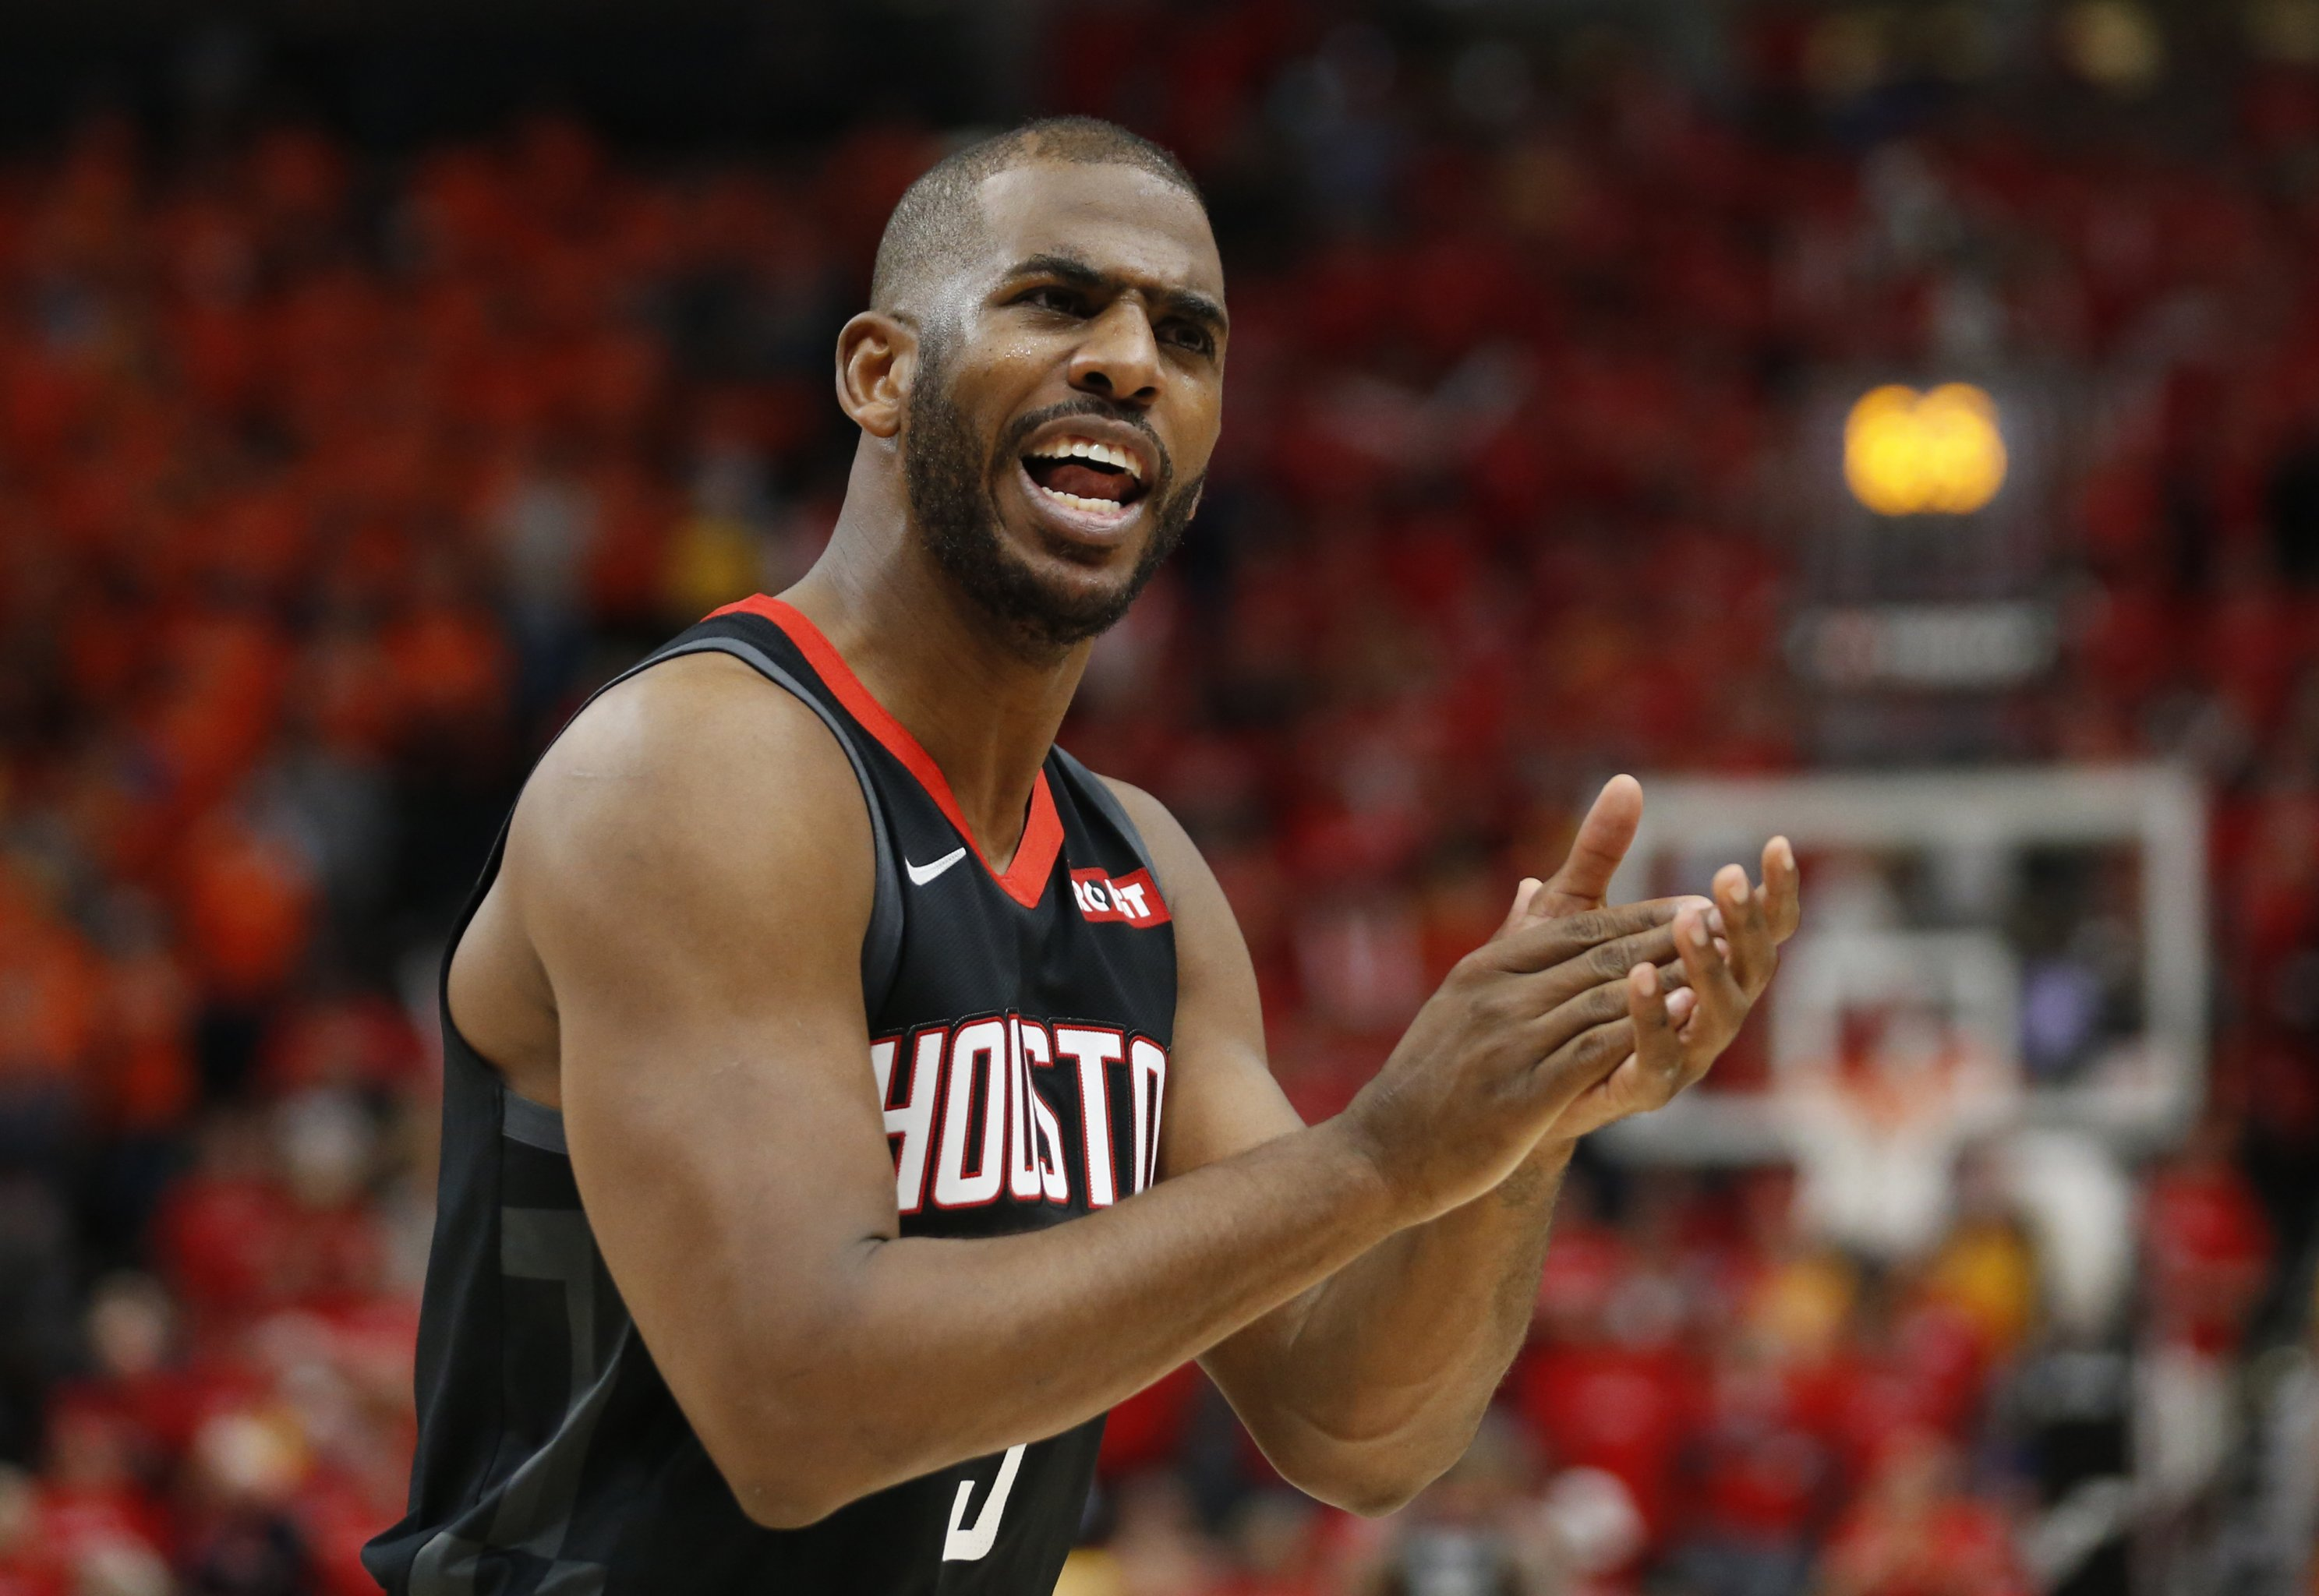 Chris Paul, Kevin Love and Other NBA Players in Desperate